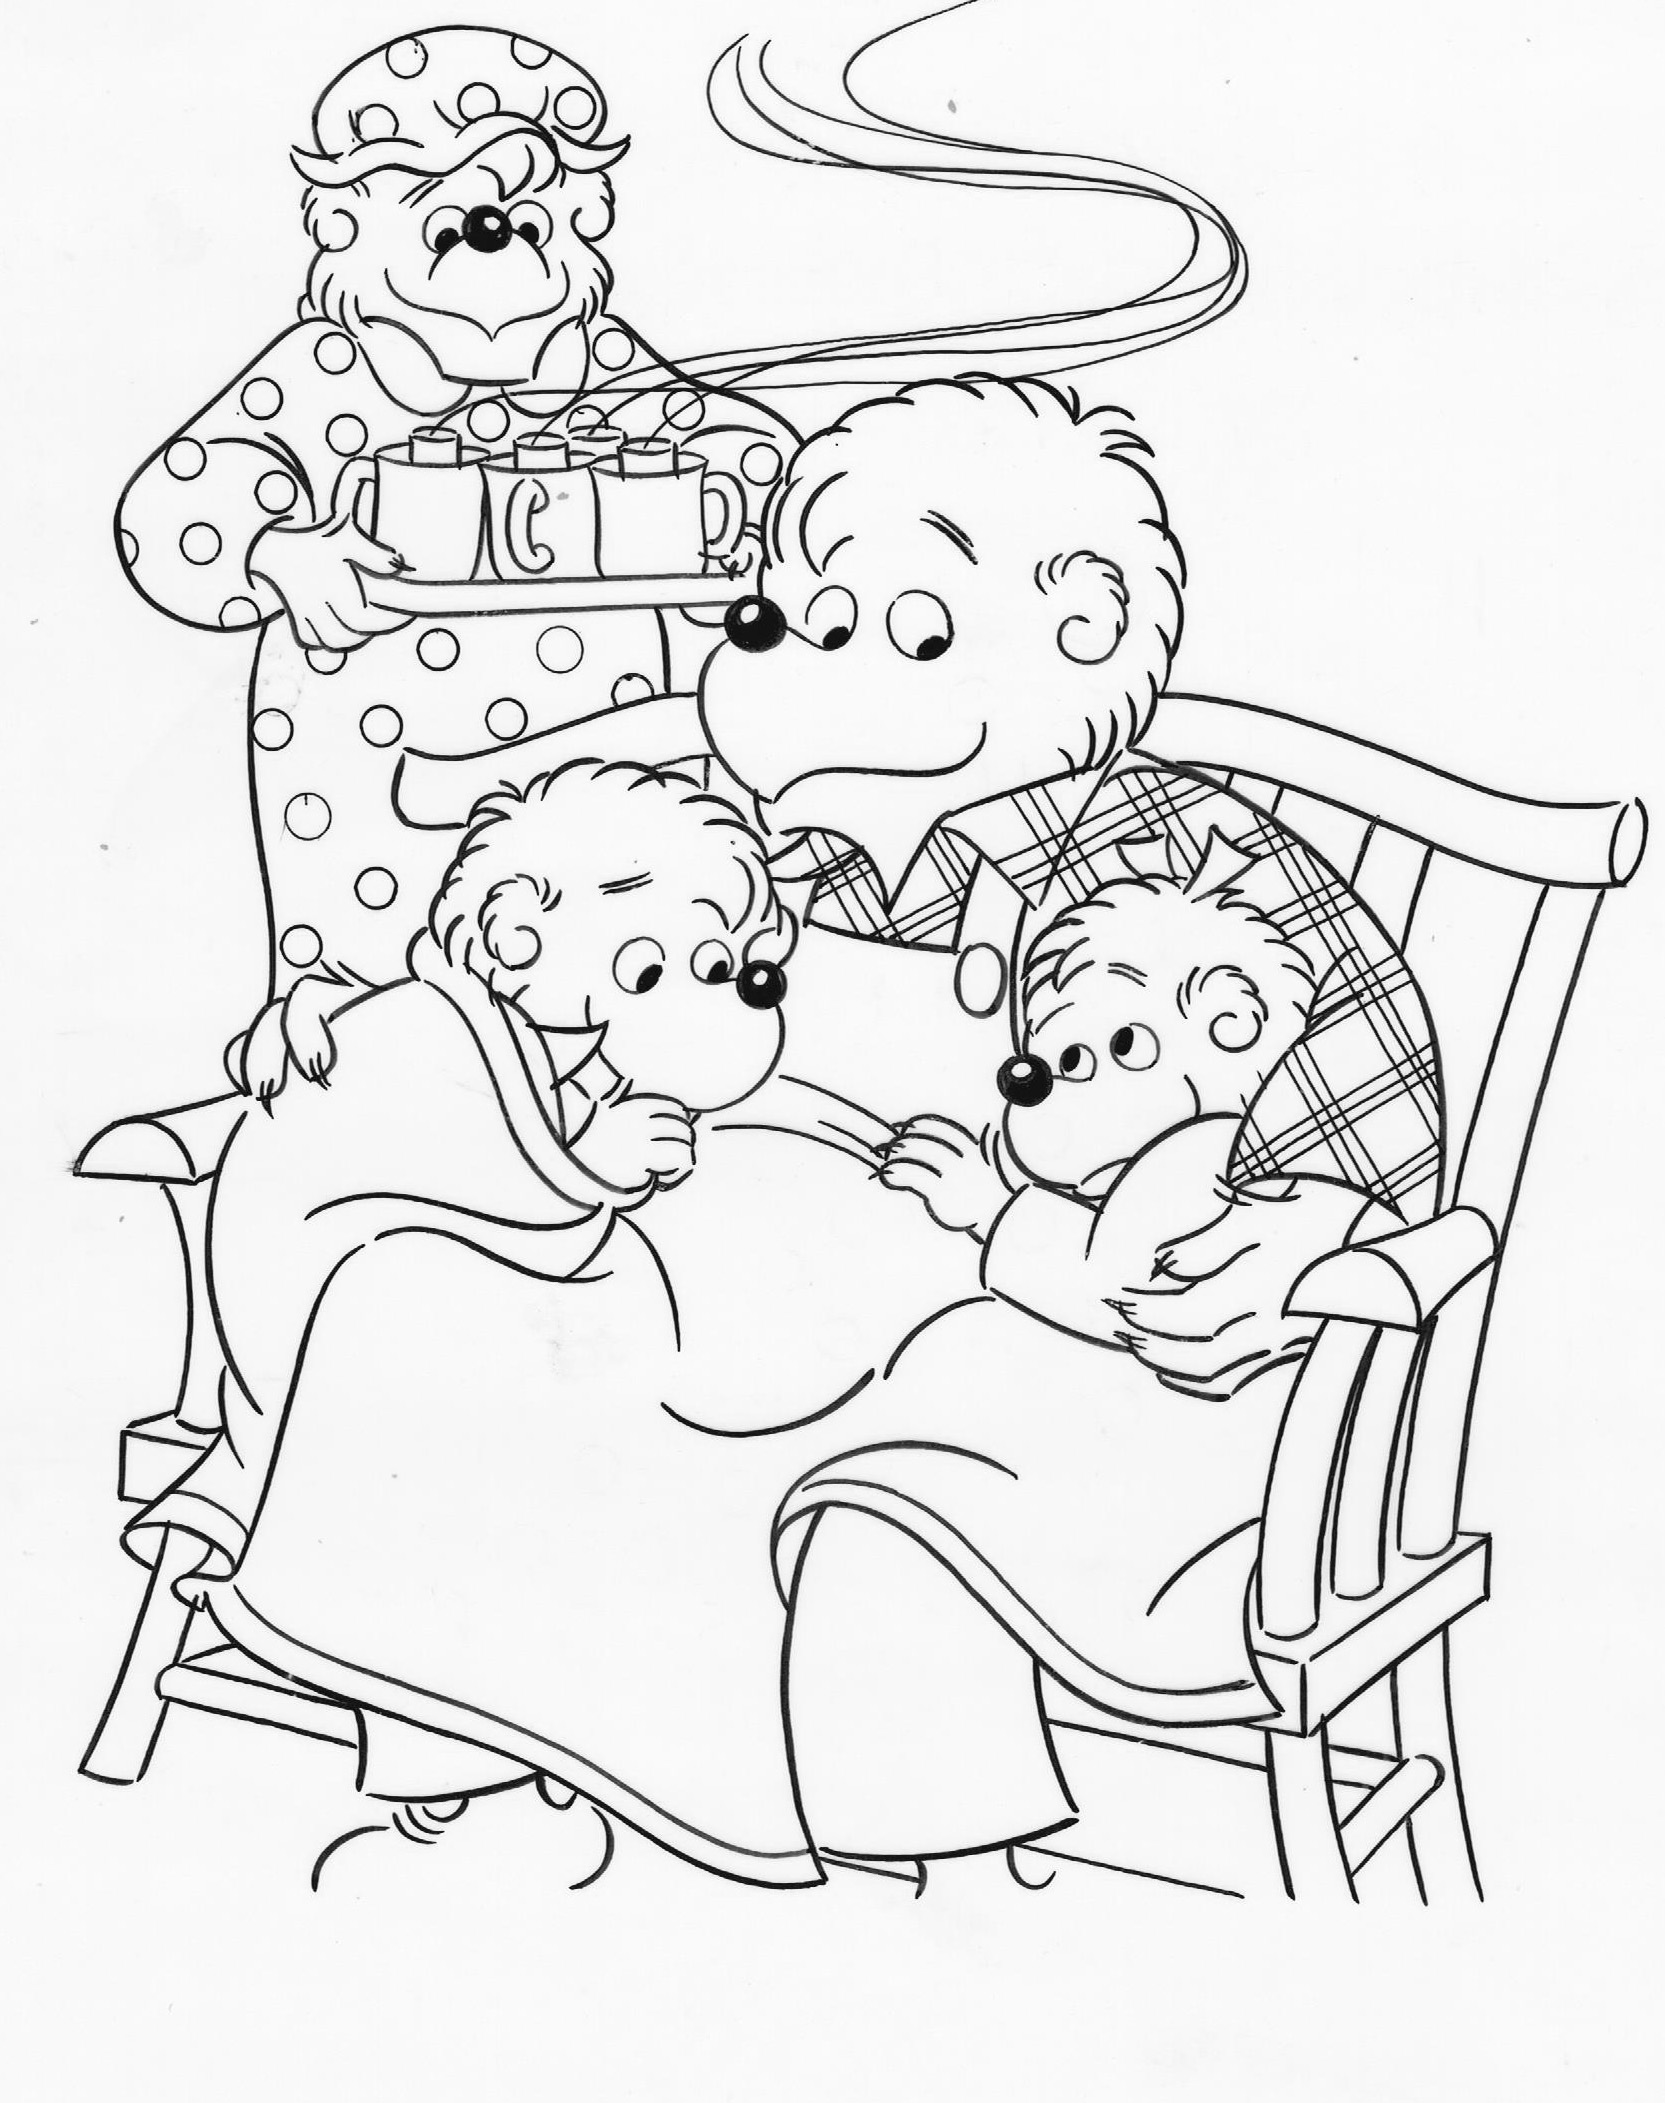 berenstain bears coloring pages the berenstain bears coloring pages coloring home coloring pages berenstain bears